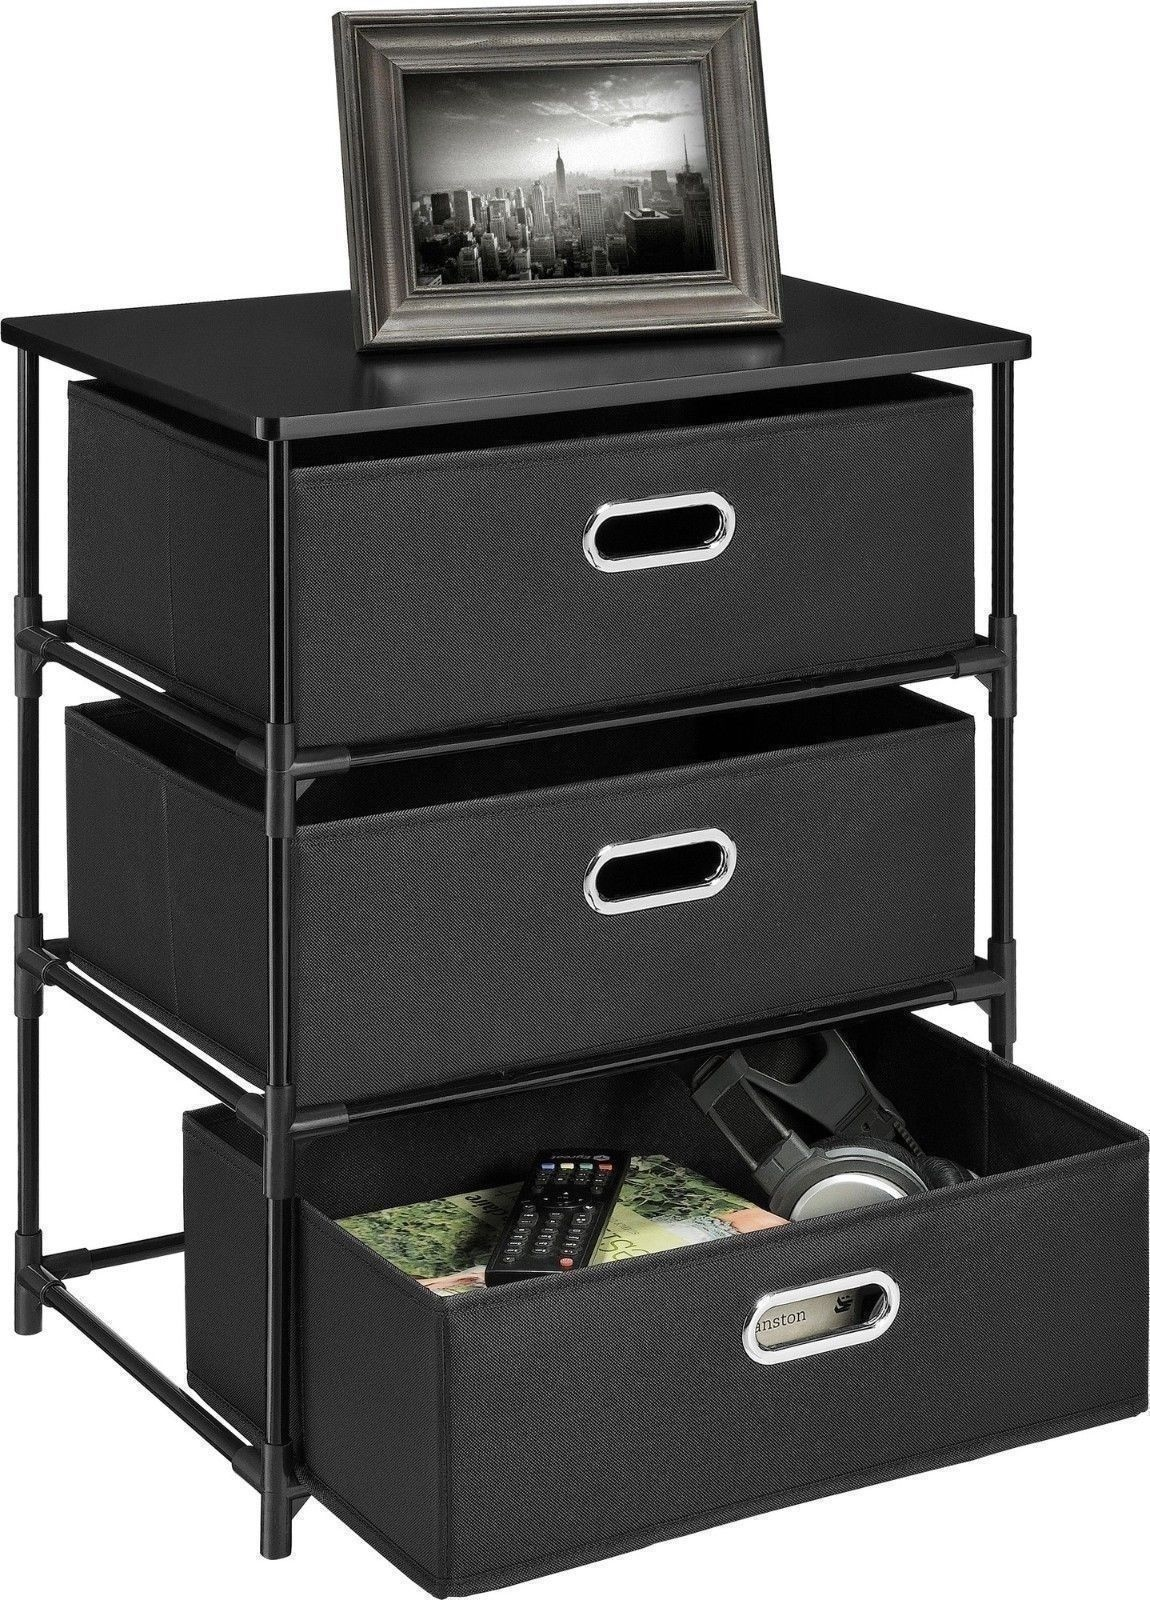 New 3 Or 4 Drawer Utility Cart Storage End Table Black